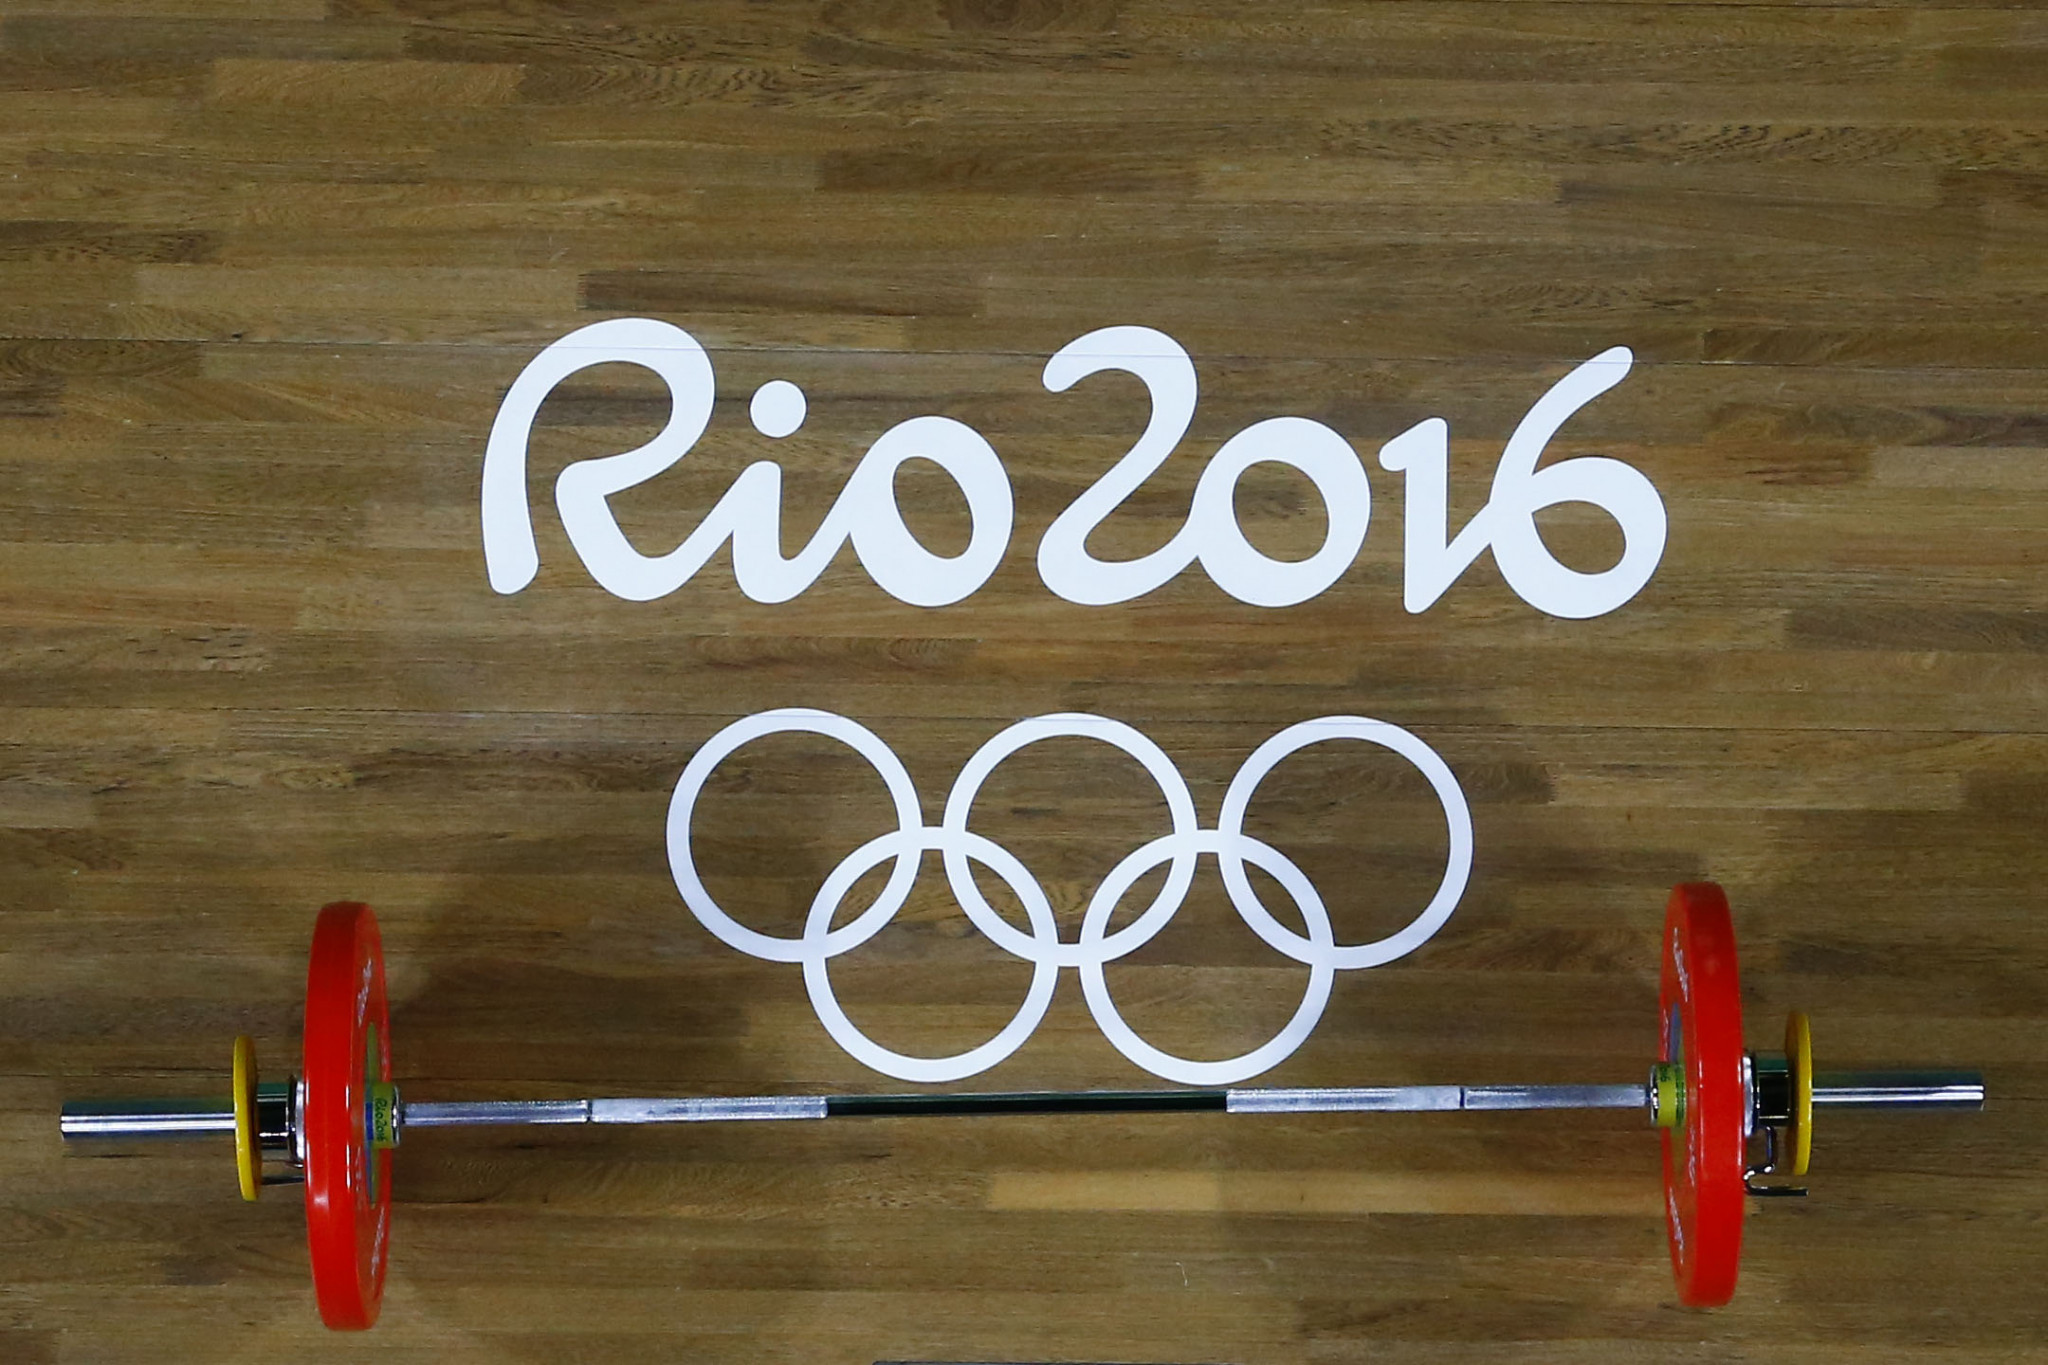 Weightlifting at Tokyo 2020 will be different to the Rio 2016 competition ©Getty Images